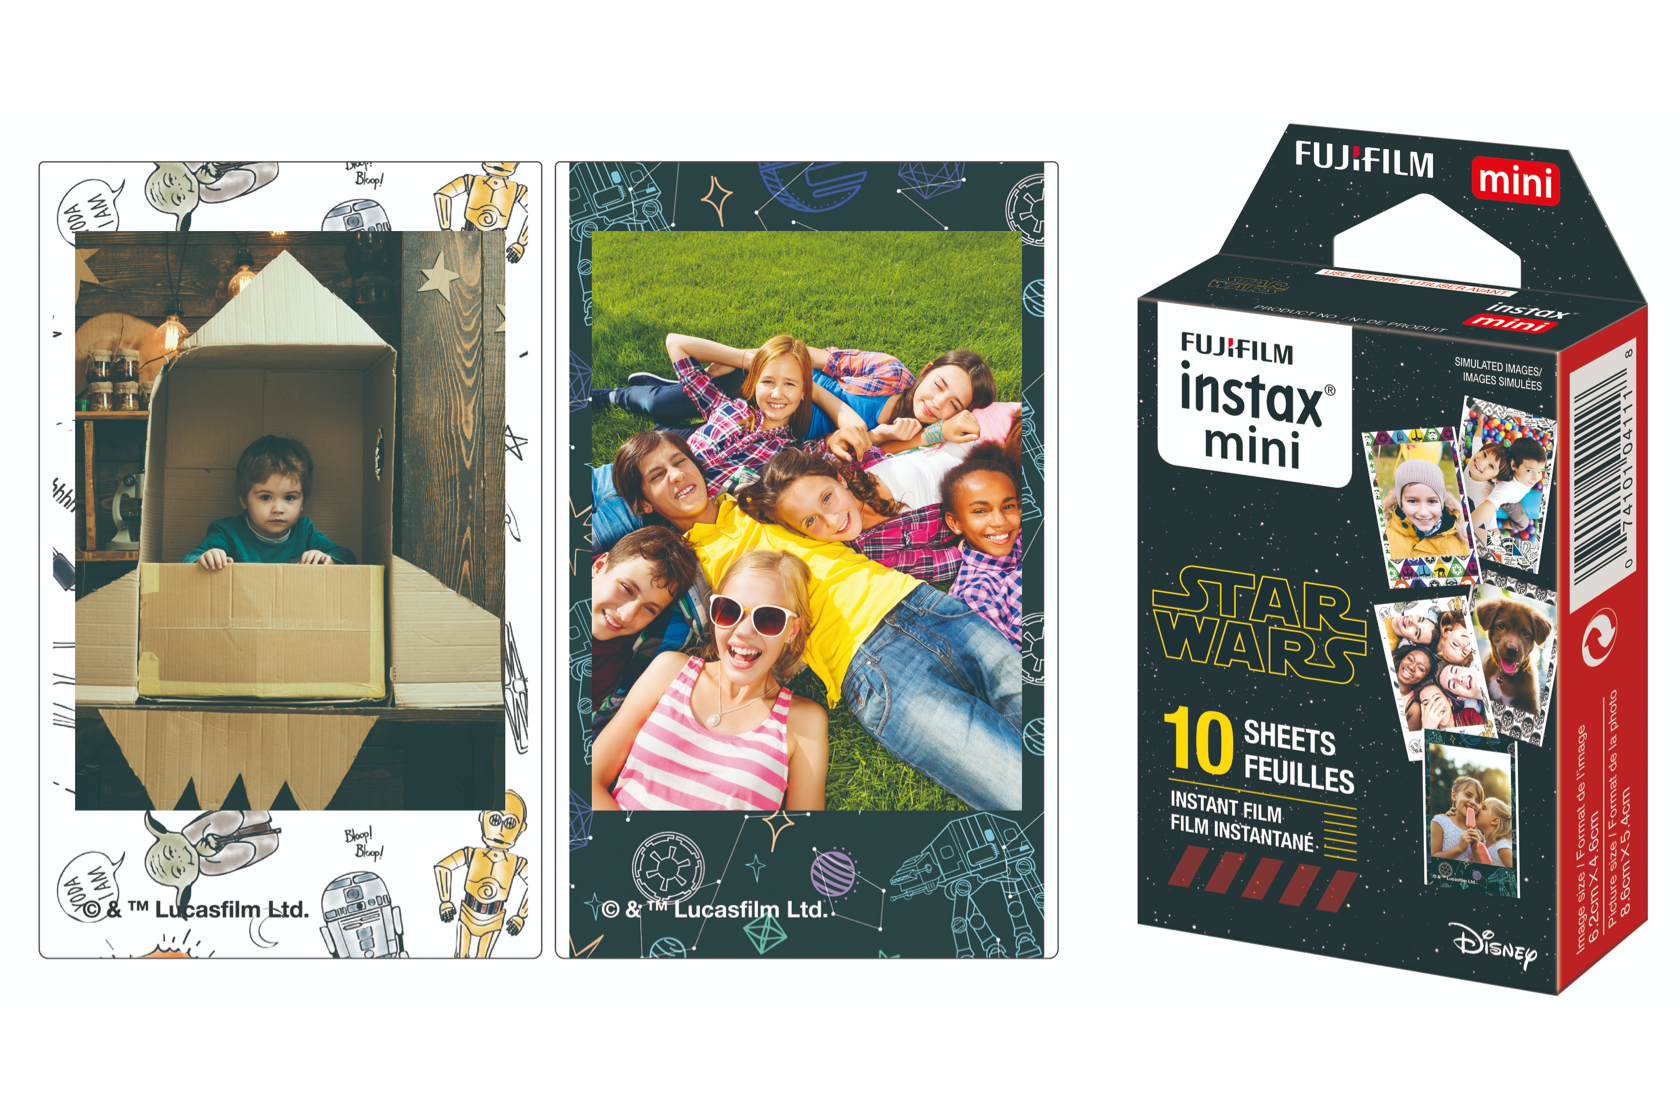 Kid photos on INSTAX Mini Star Wars Film next to INSTAX Mini Star Wars Film box